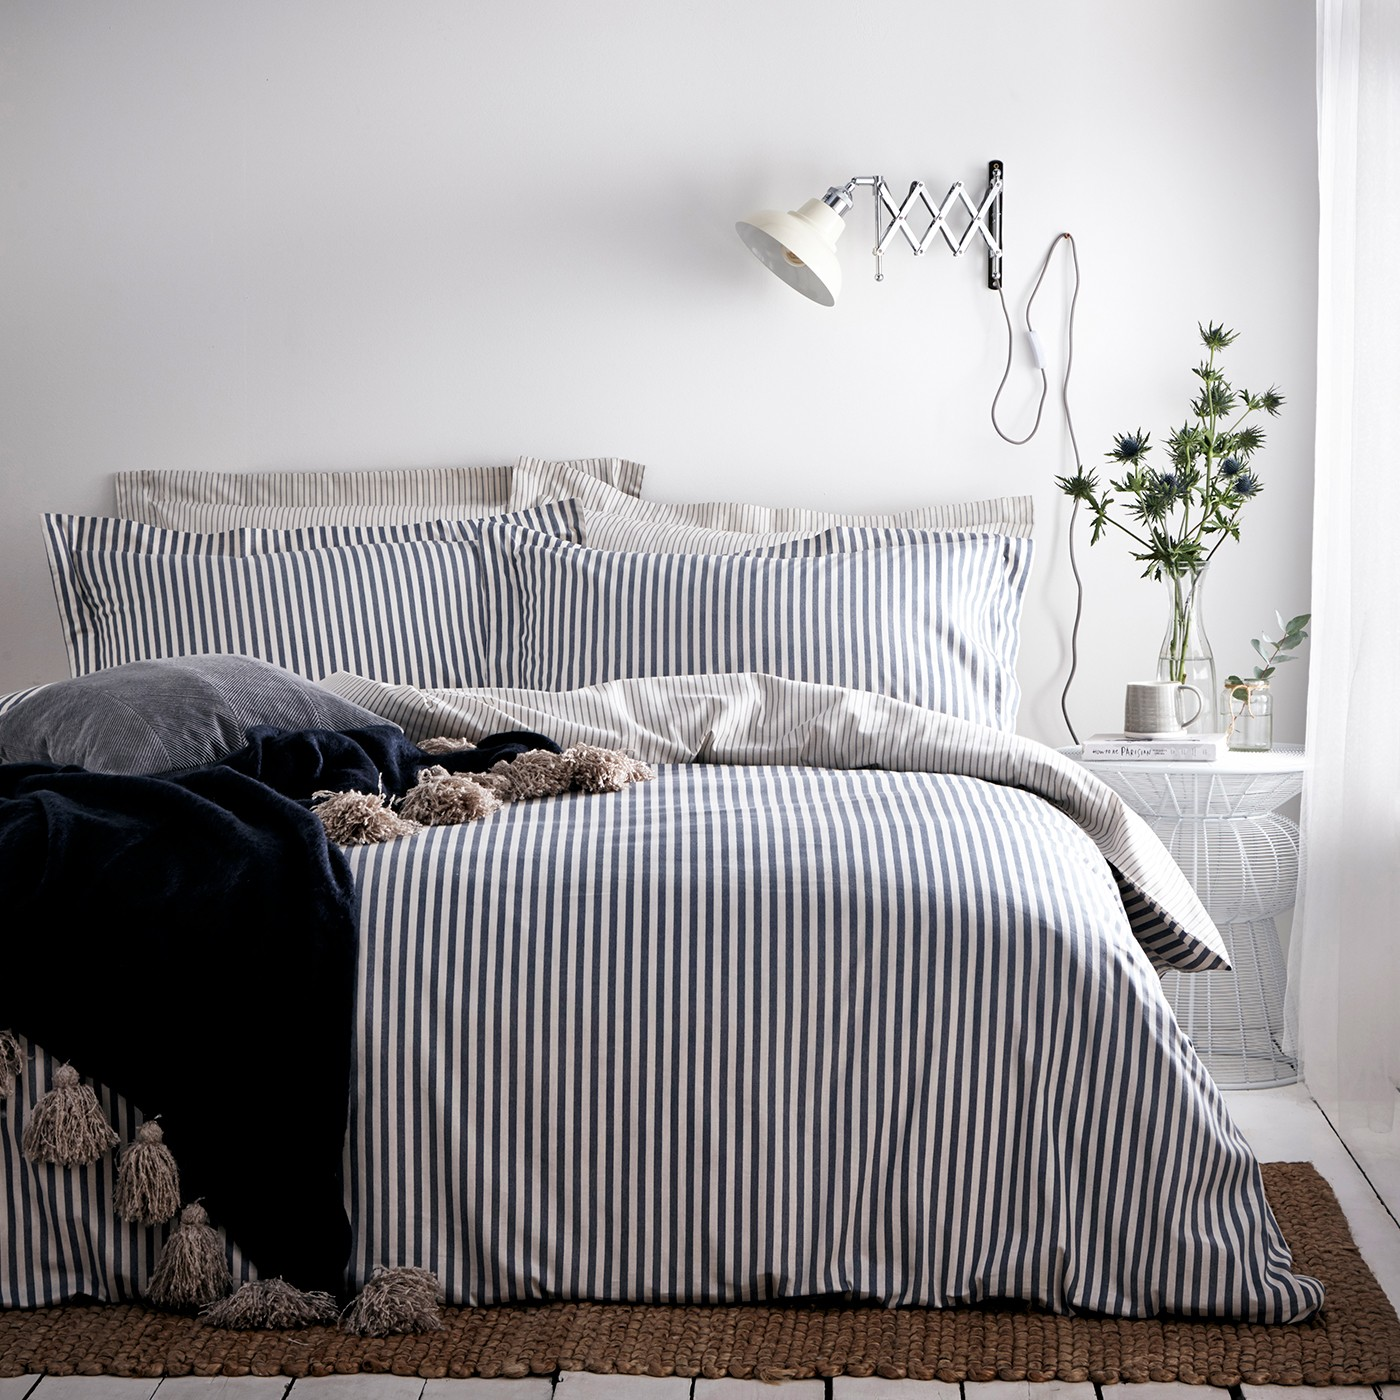 The Home Furnishings Company Cotton Navy/ Grey Duvet Cover and Matching Pillow Cases